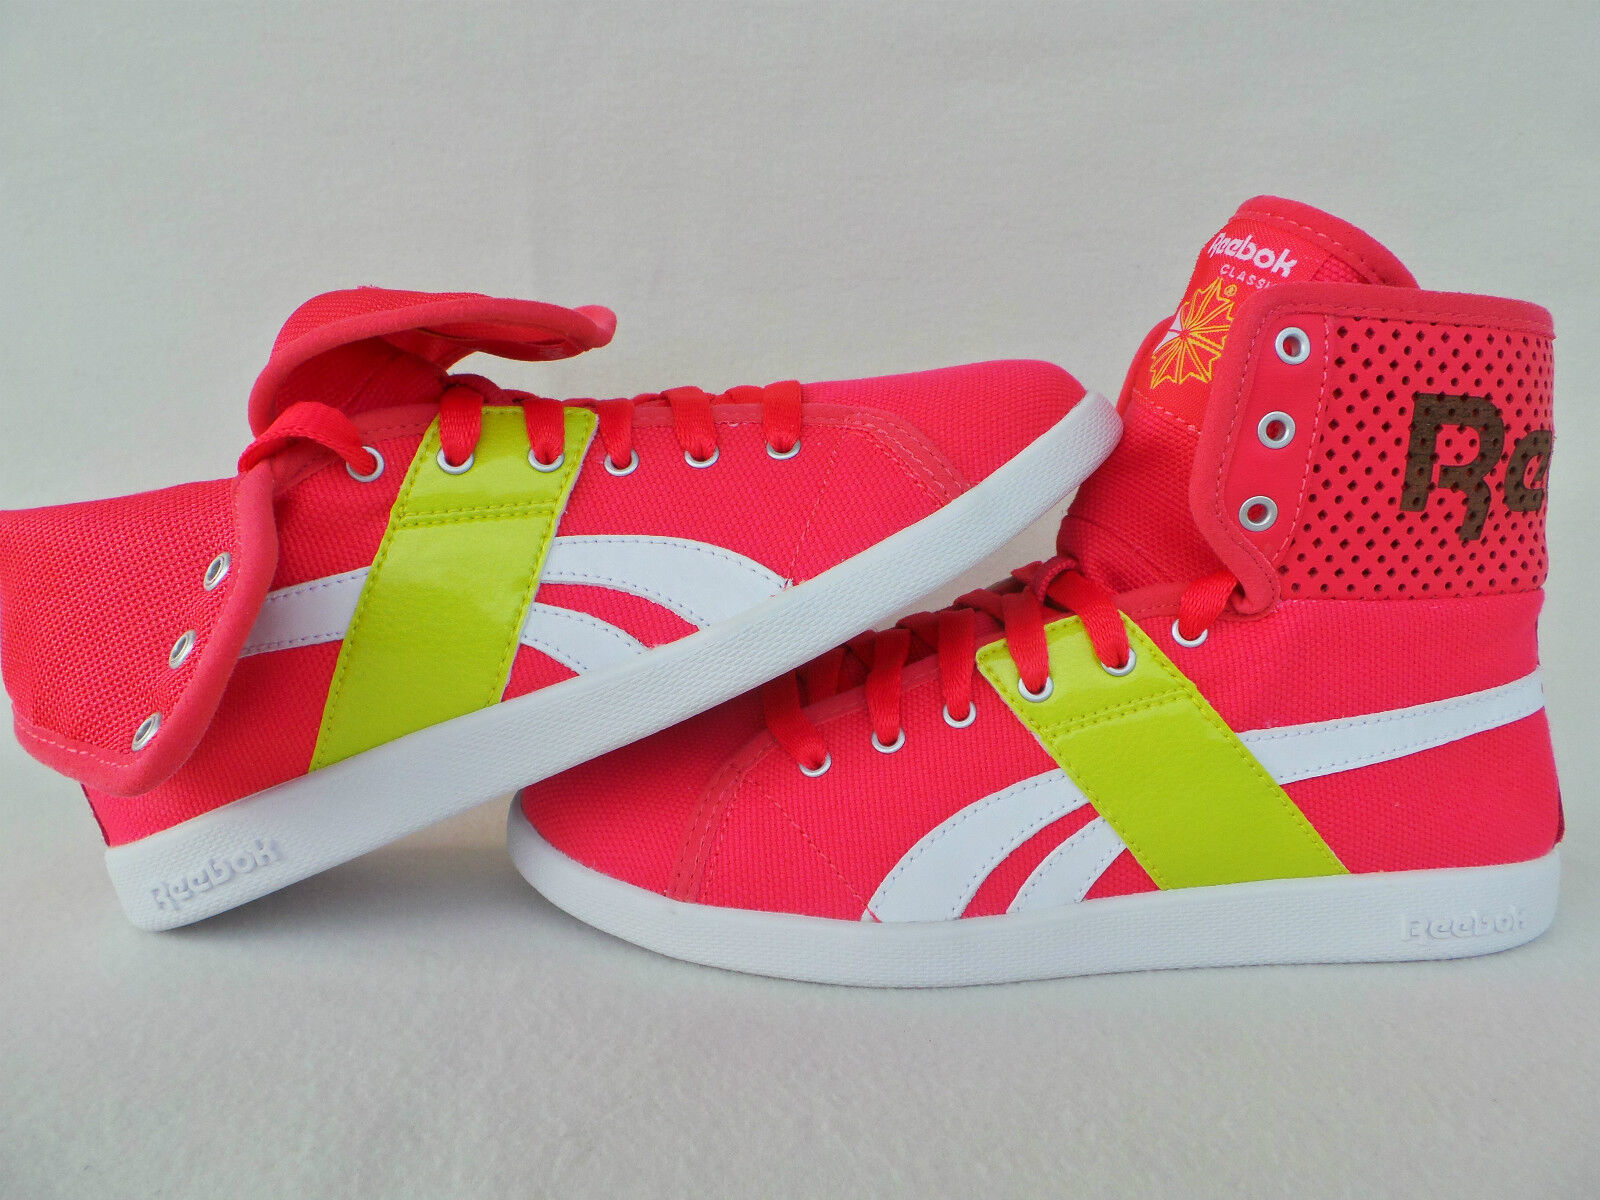 REEBOK REEBOK REEBOK BASKETS ROSE SIMILAIRE Chucks CHAUSSURE BOTTES FEMMES TAILLE 36 37 38 39 f6b1a4